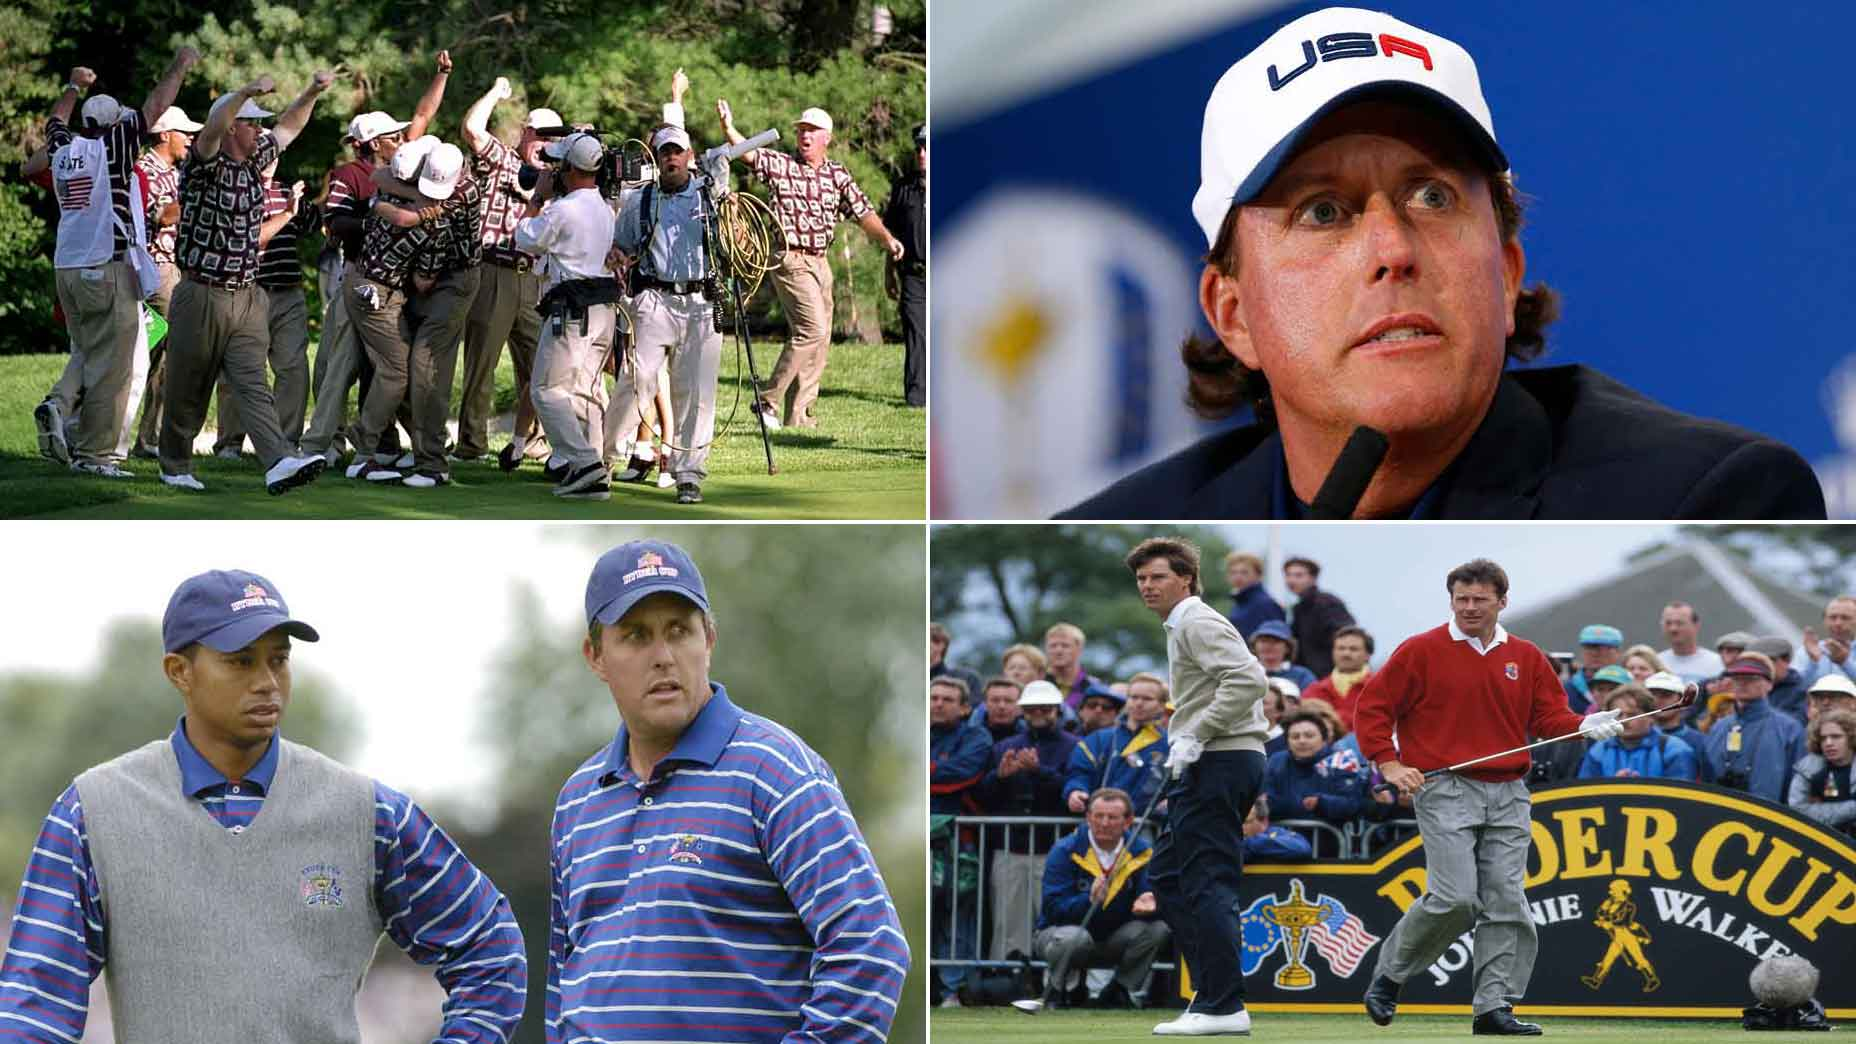 Ryder Cup controversies cover